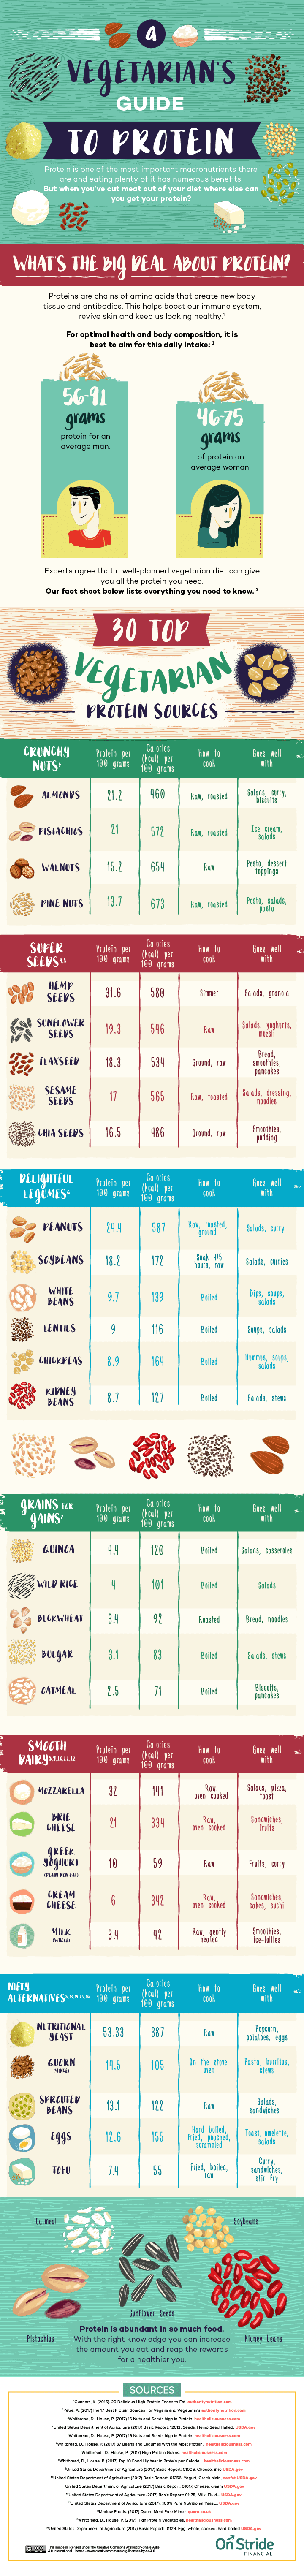 A-vegetarians-guide-to-protein